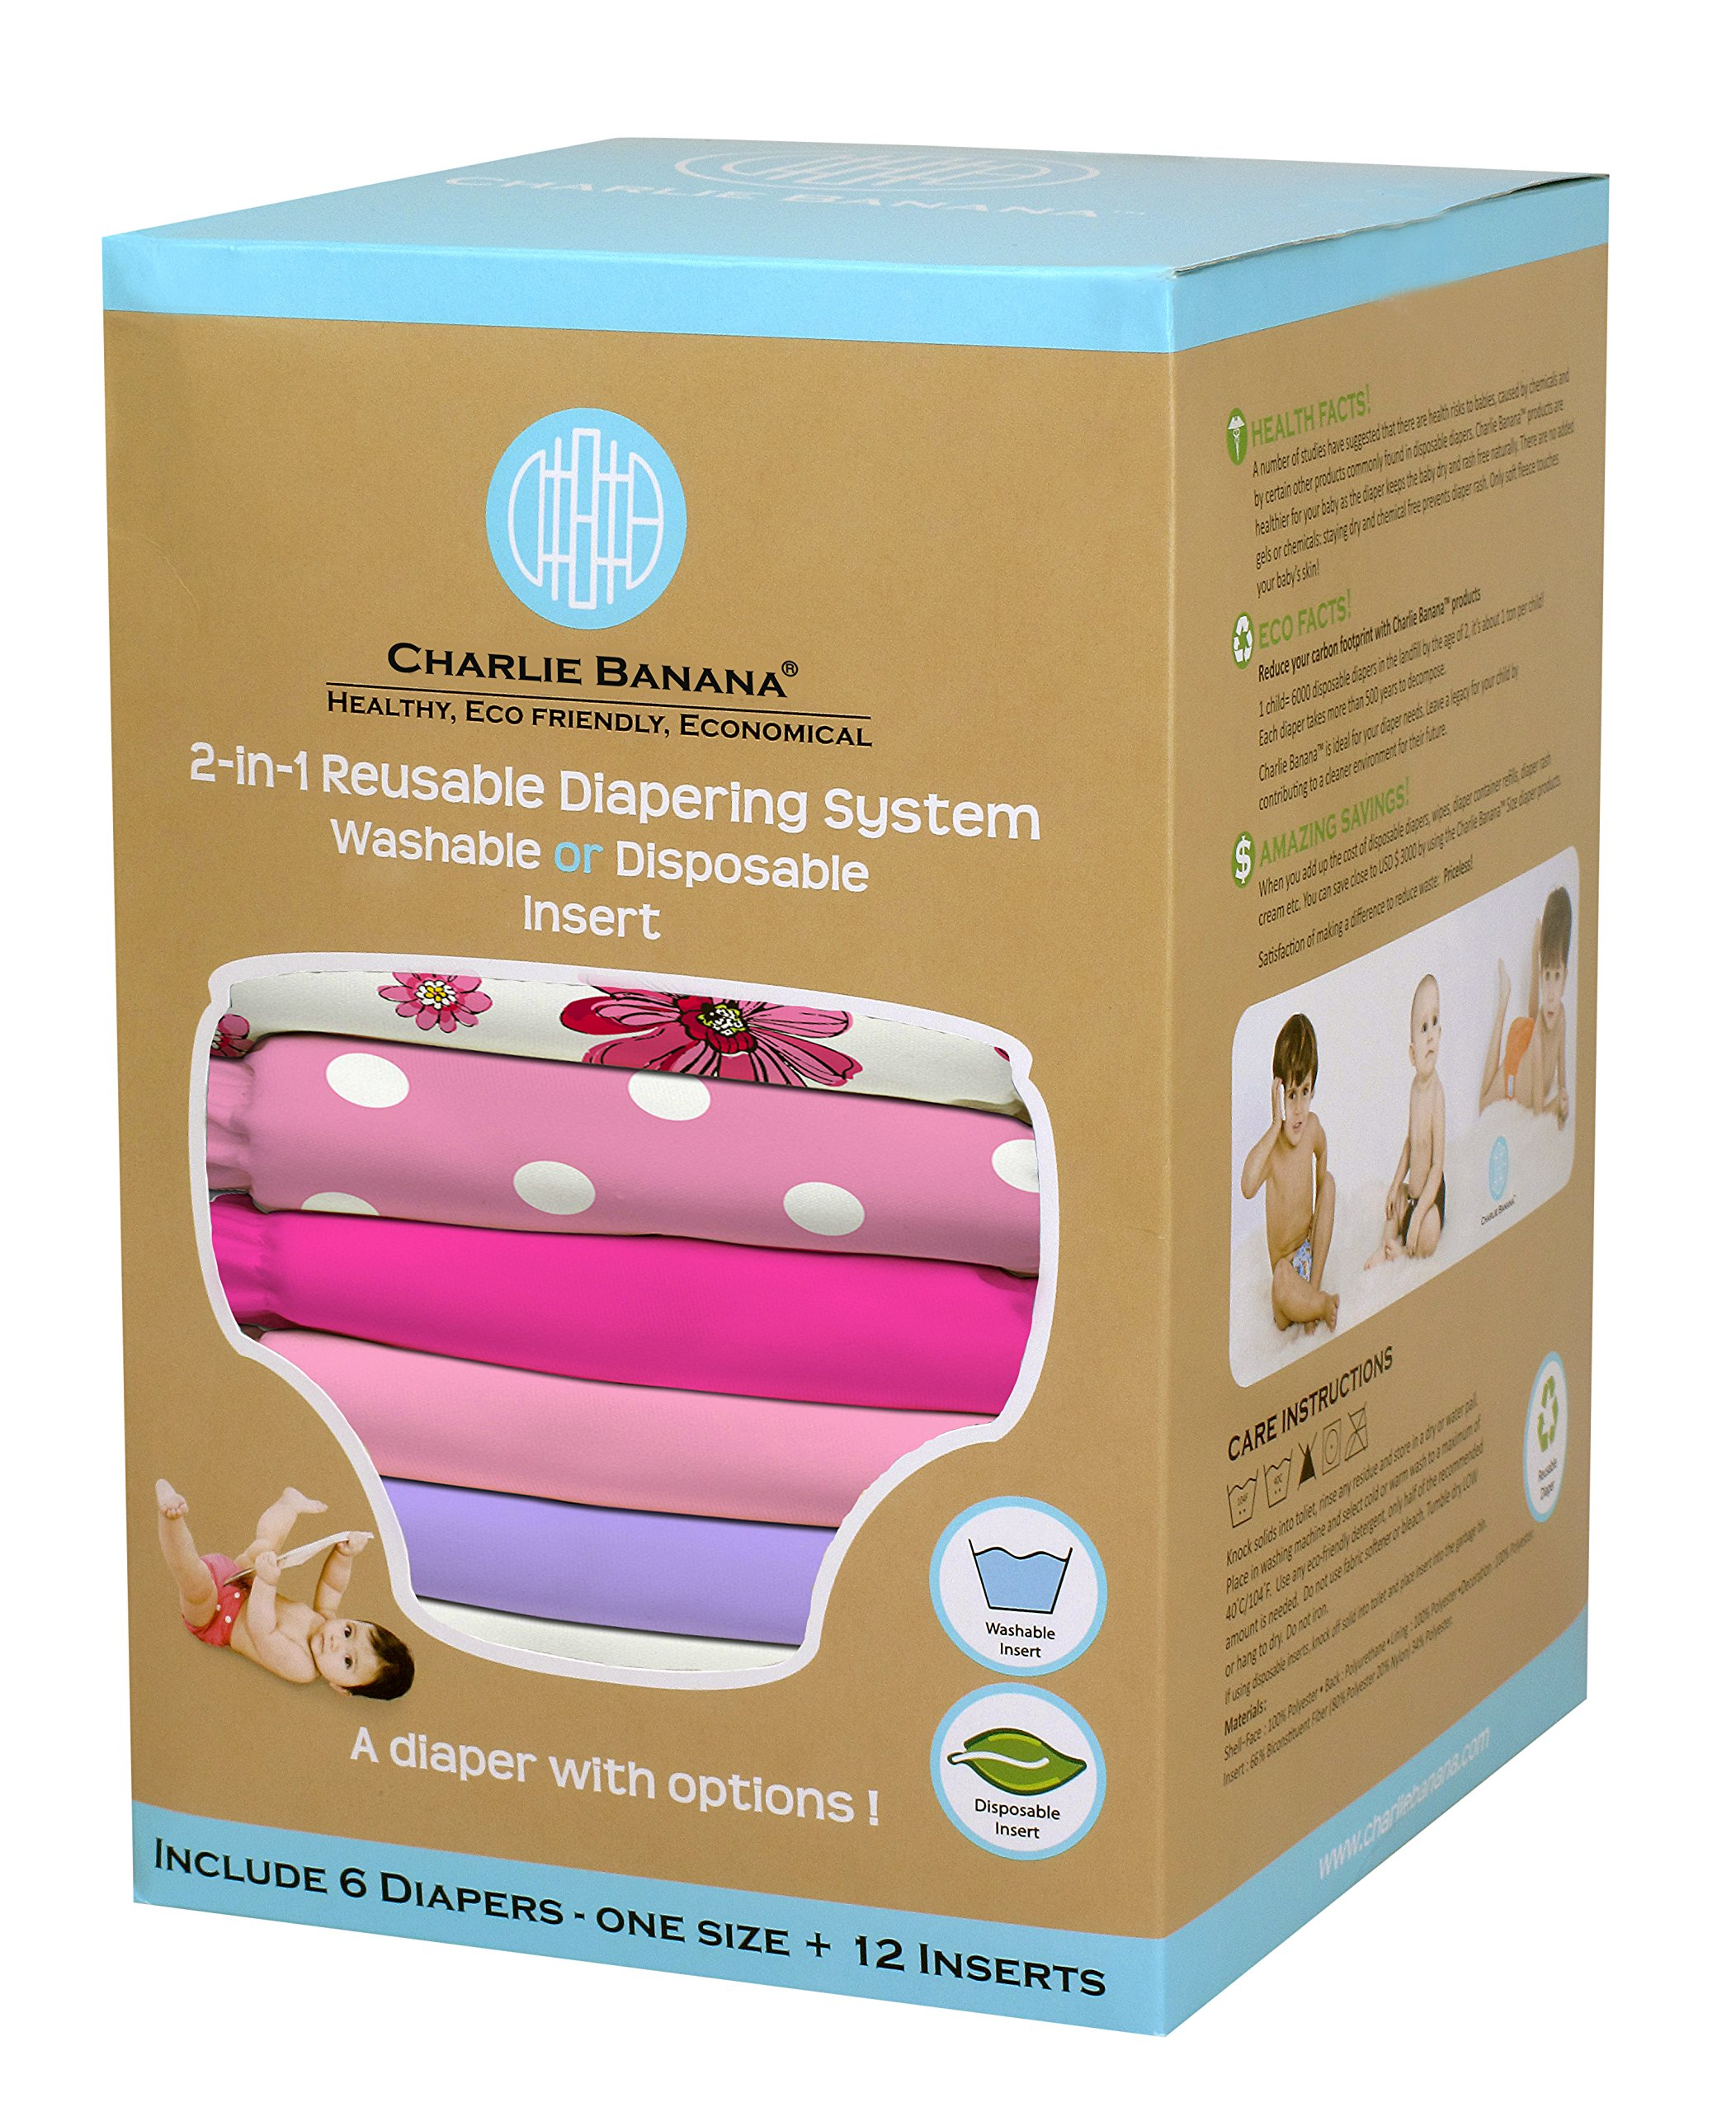 Charlie Banana 2-in-1 6-Piece Reusable Diapers, Girly